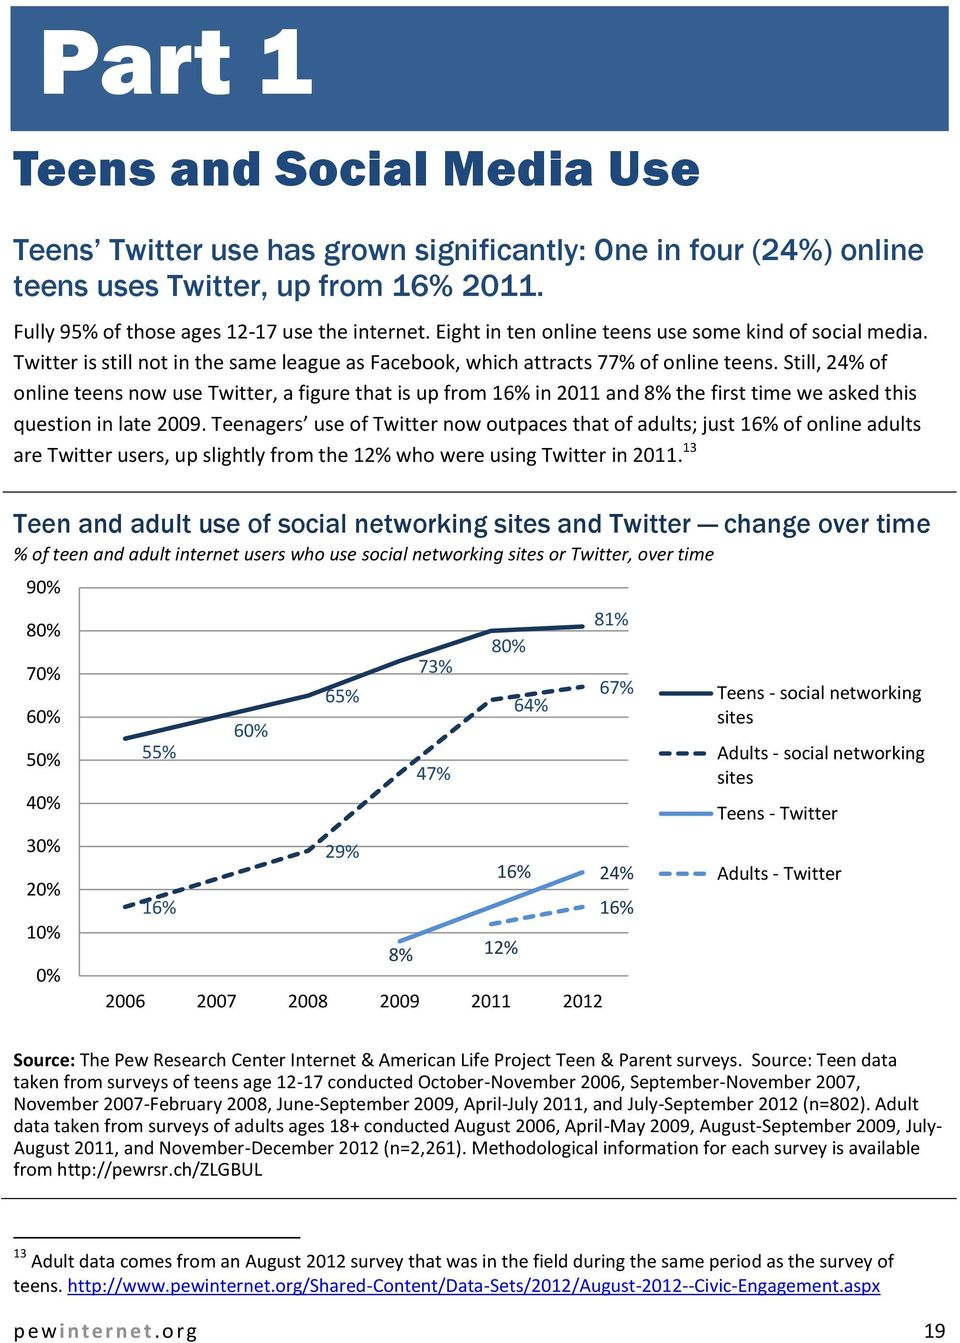 Still, 24% of online teens now use Twitter, a figure that is up from 16% in 2011 and 8% the first time we asked this question in late 2009.